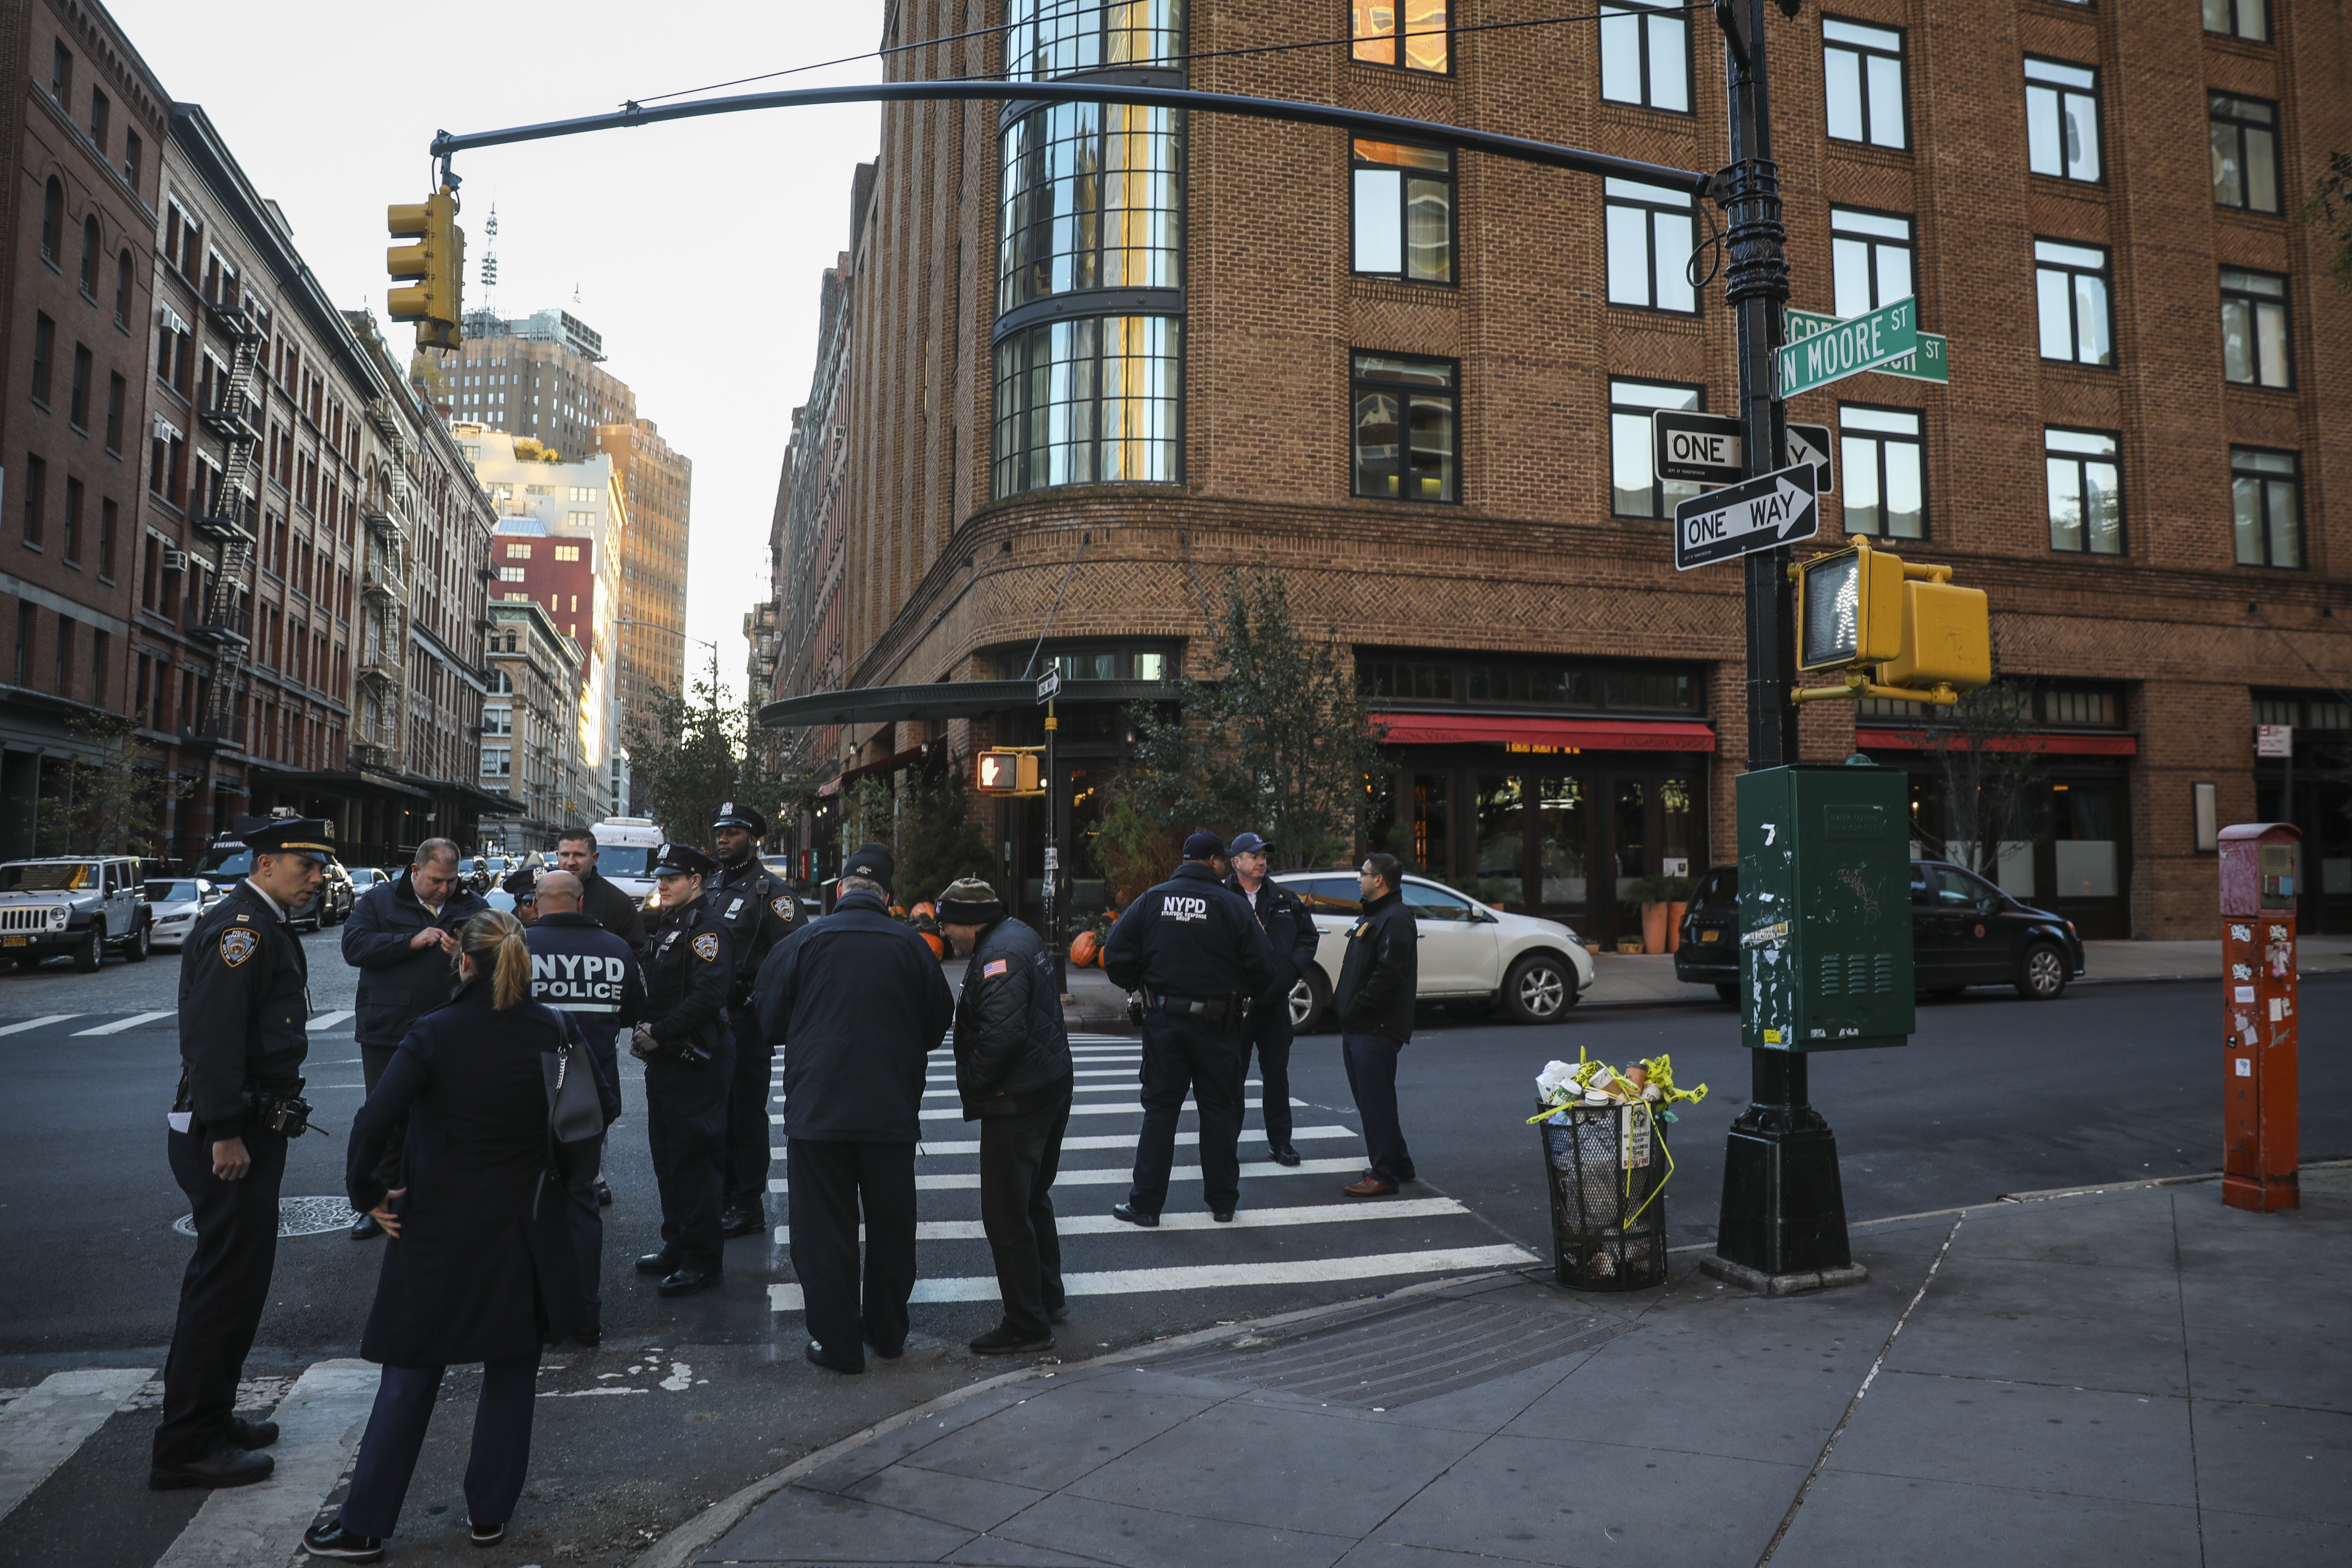 Police gather near the scene of where another package bomb was found early Thursday morning at Robert De Niro's Tribeca Grill restaurant, October 25, 2018 in New York City.